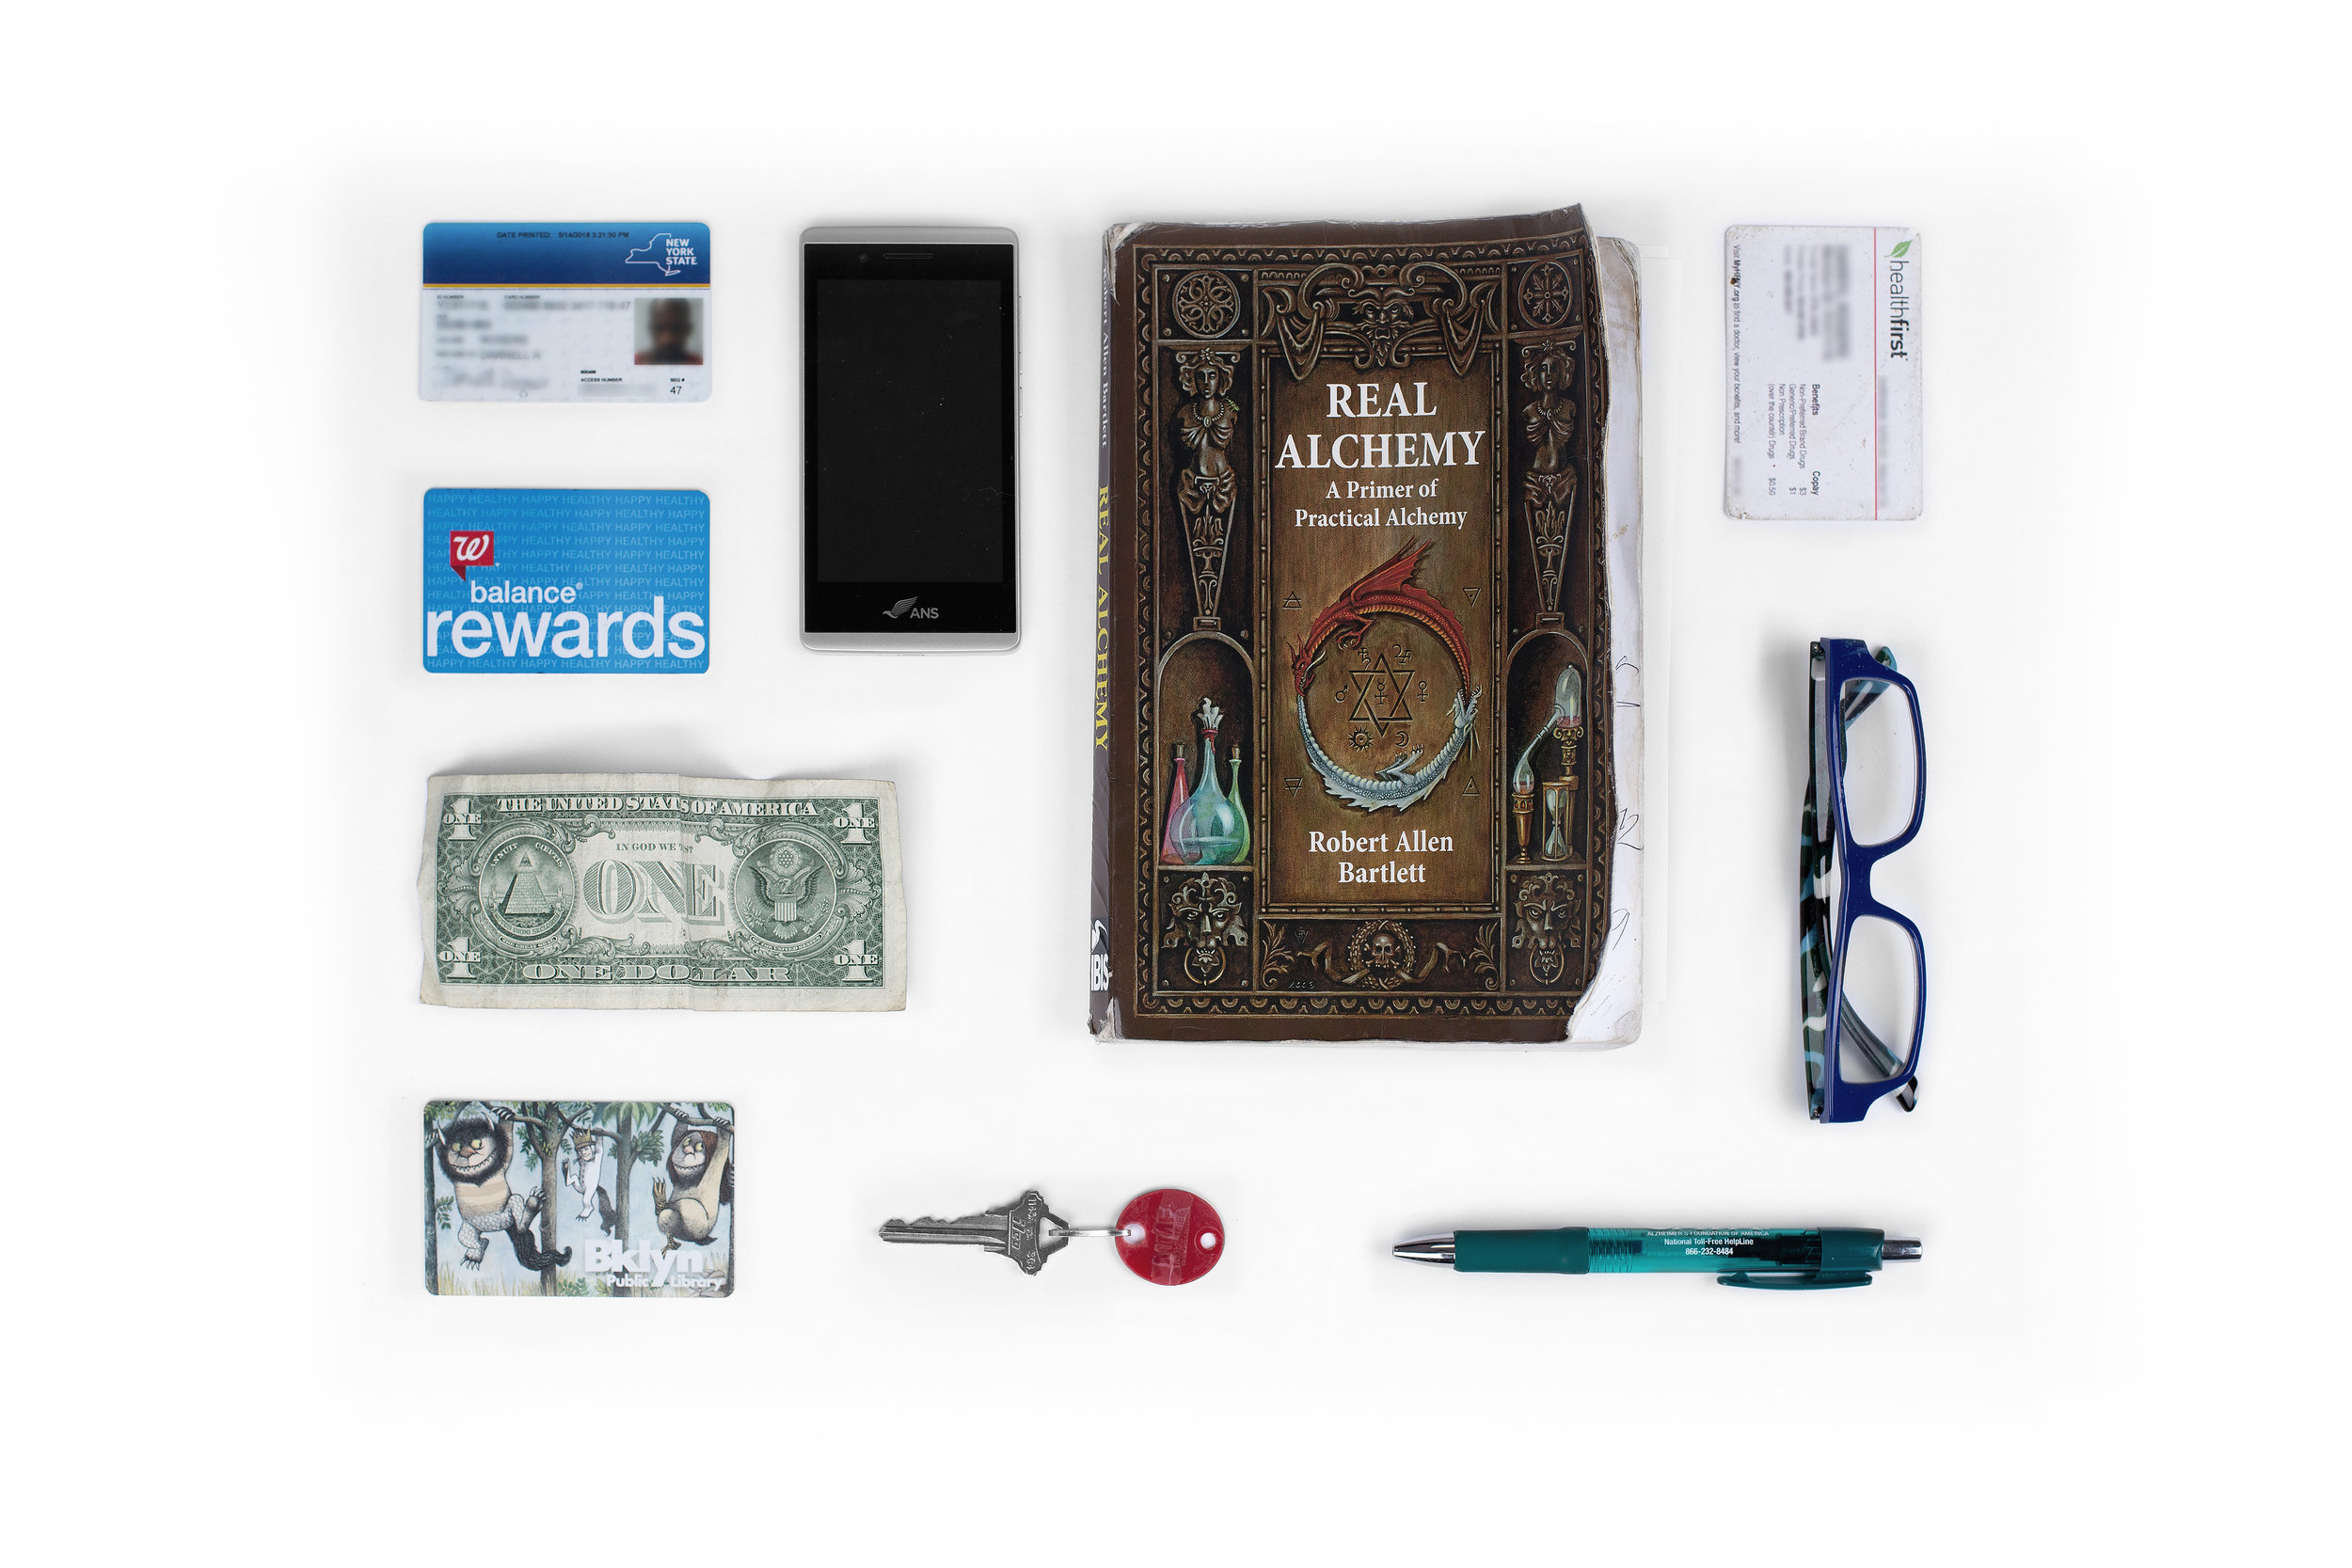 "New York State ID – Cell Phone – ""Real Alchemy"" Book – Health Insurance Card – Walgreens Rewards Card – $1 Bill – Reading Glasses – Library Card – Key to Storage Locker – Pen"